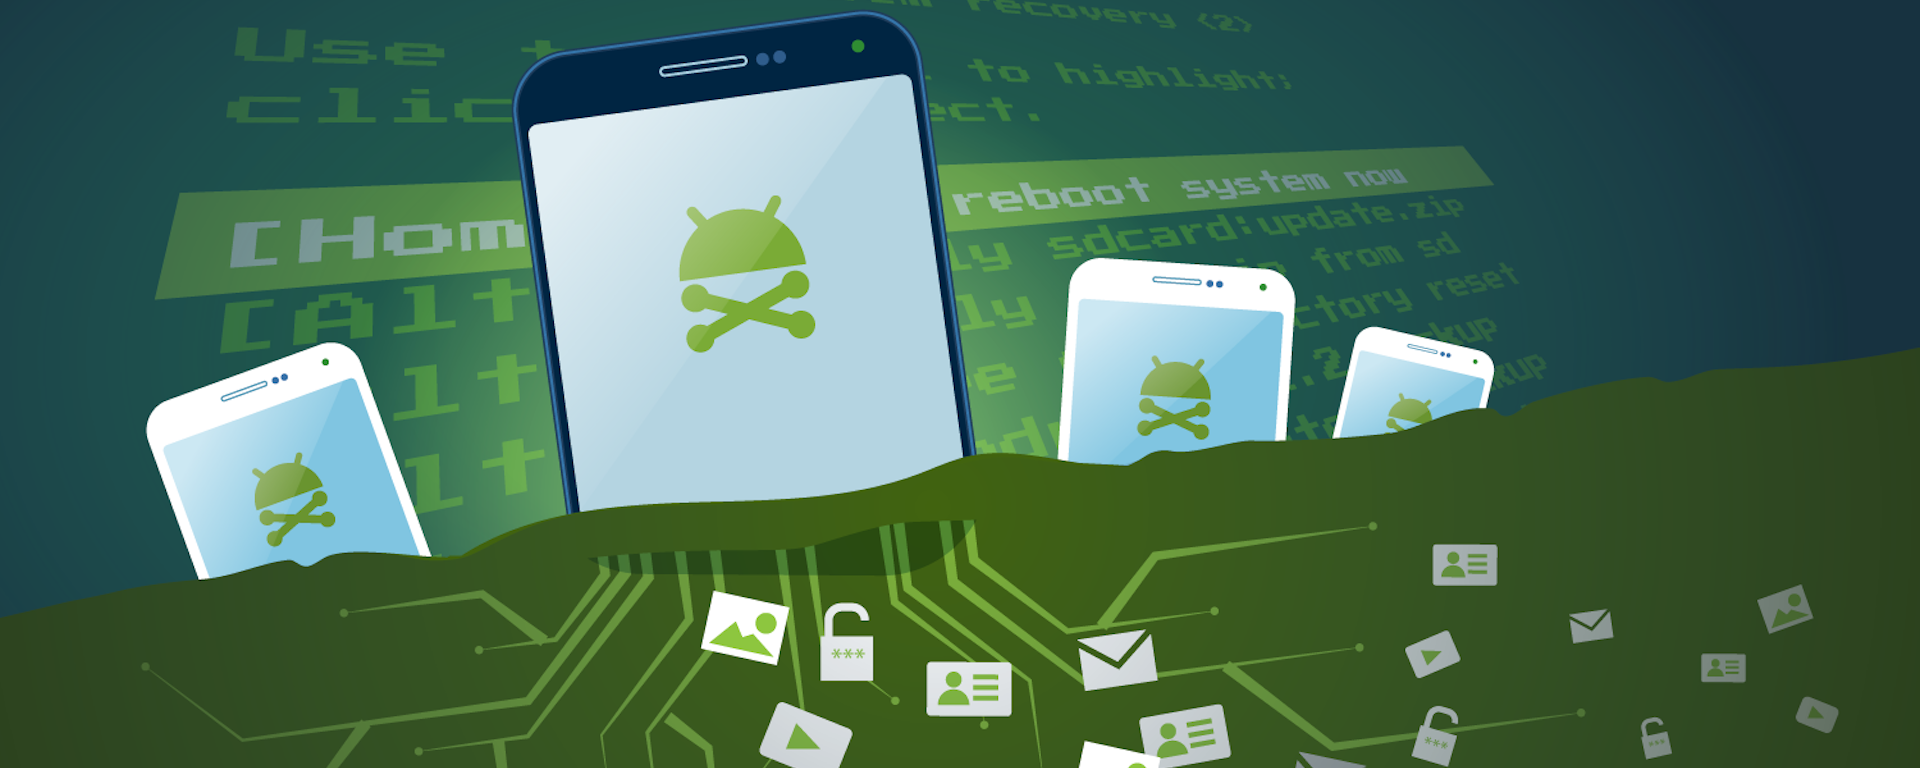 Hardware-level security to avoid risks of rooting for Android